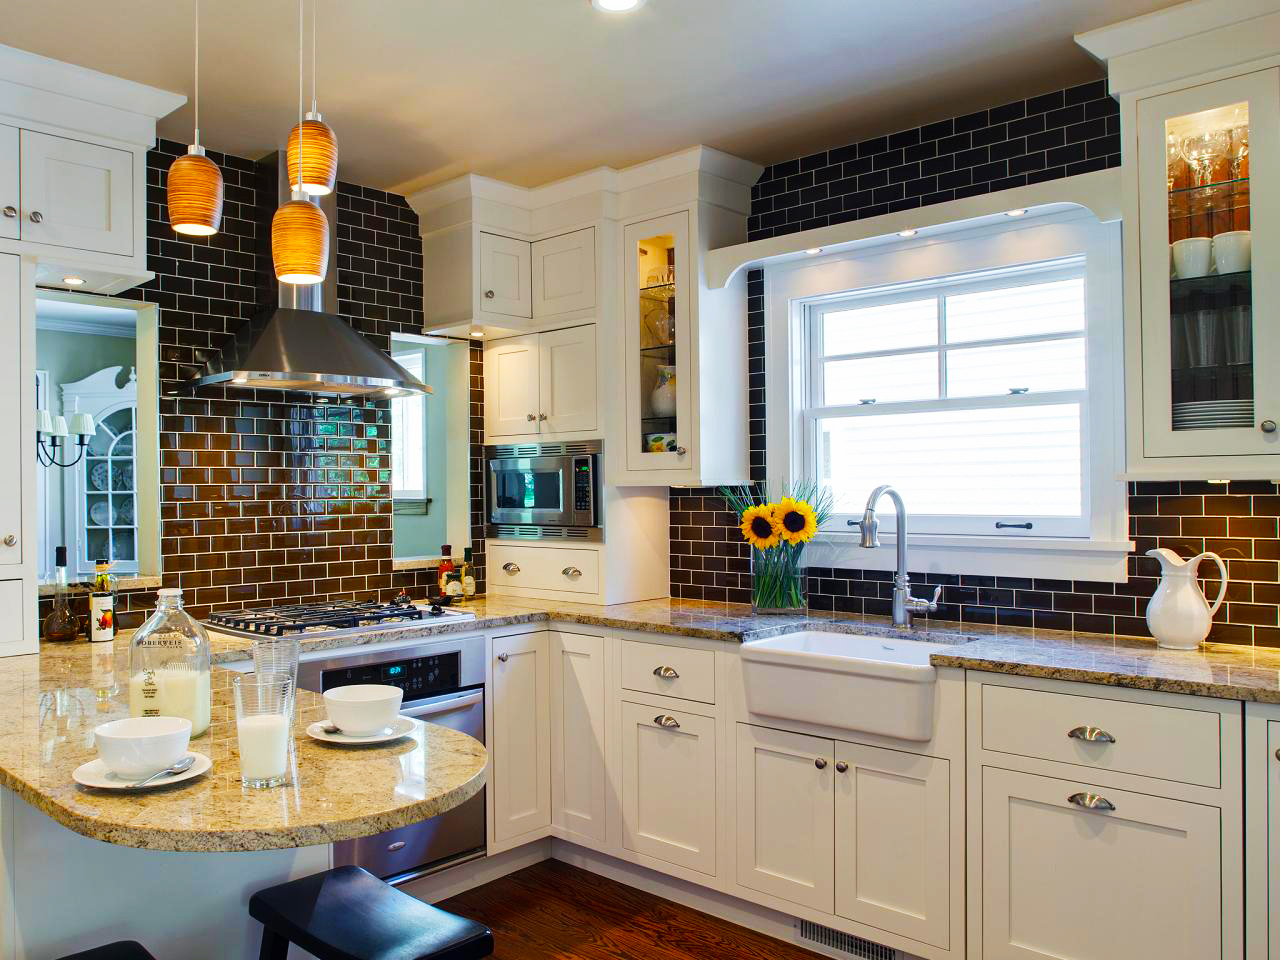 tiles in kitchen design cost to remodel kitchen backsplash designs roy home design 6228